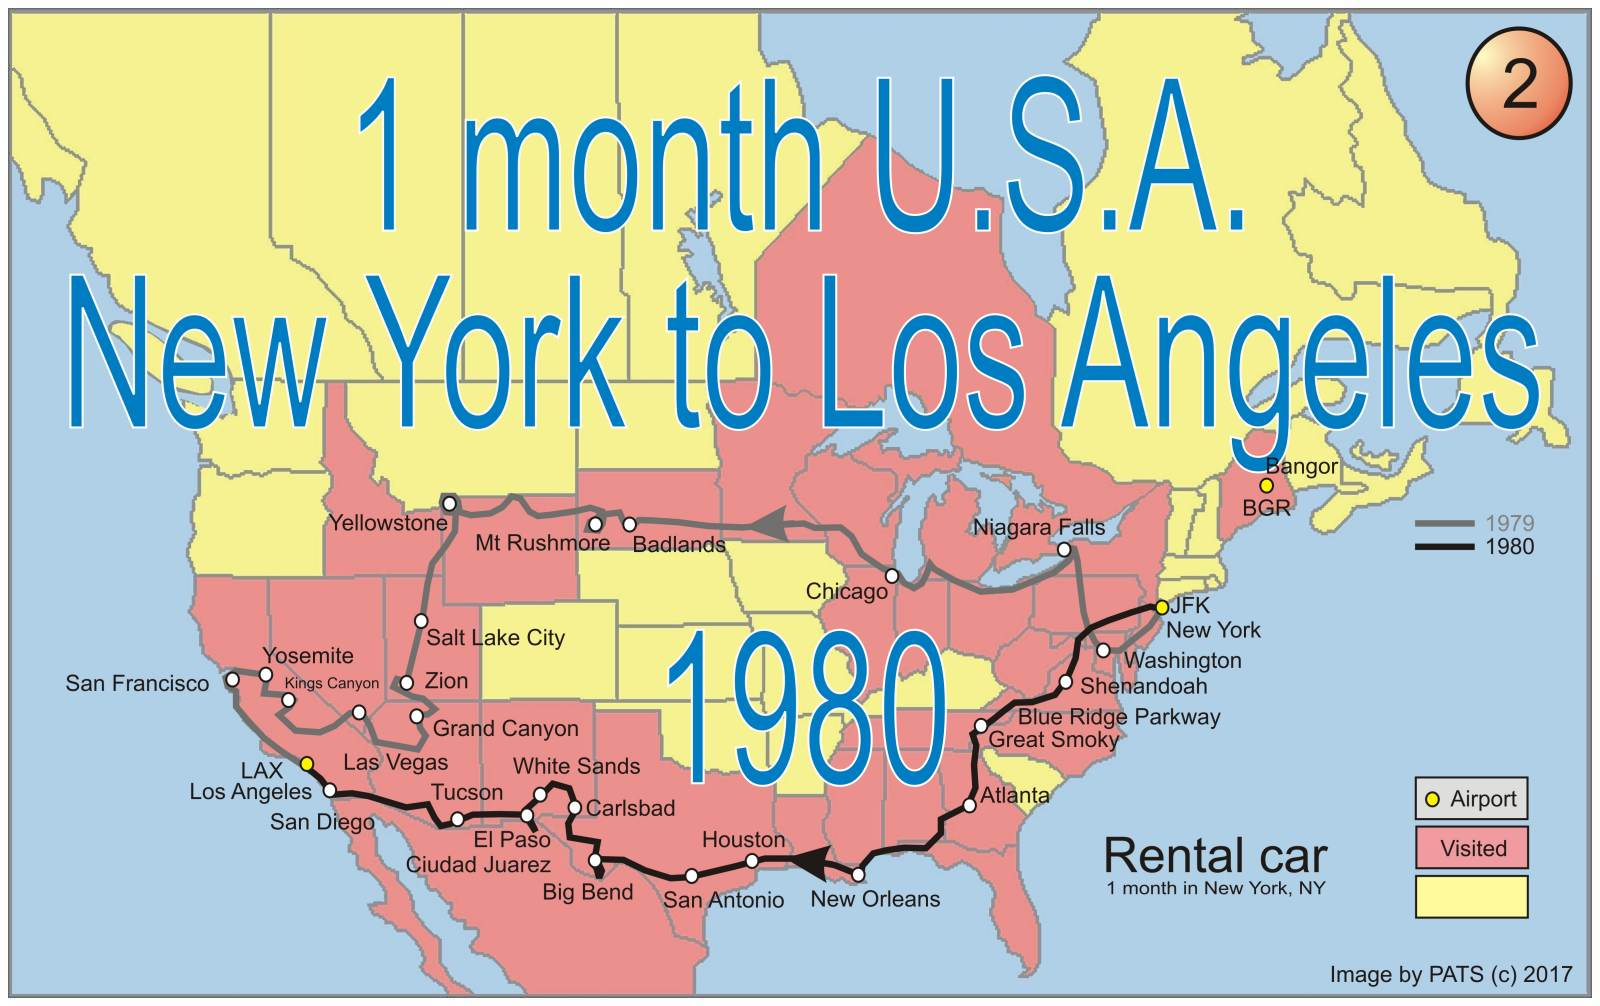 1980 - 1 month - New York to Los Angeles